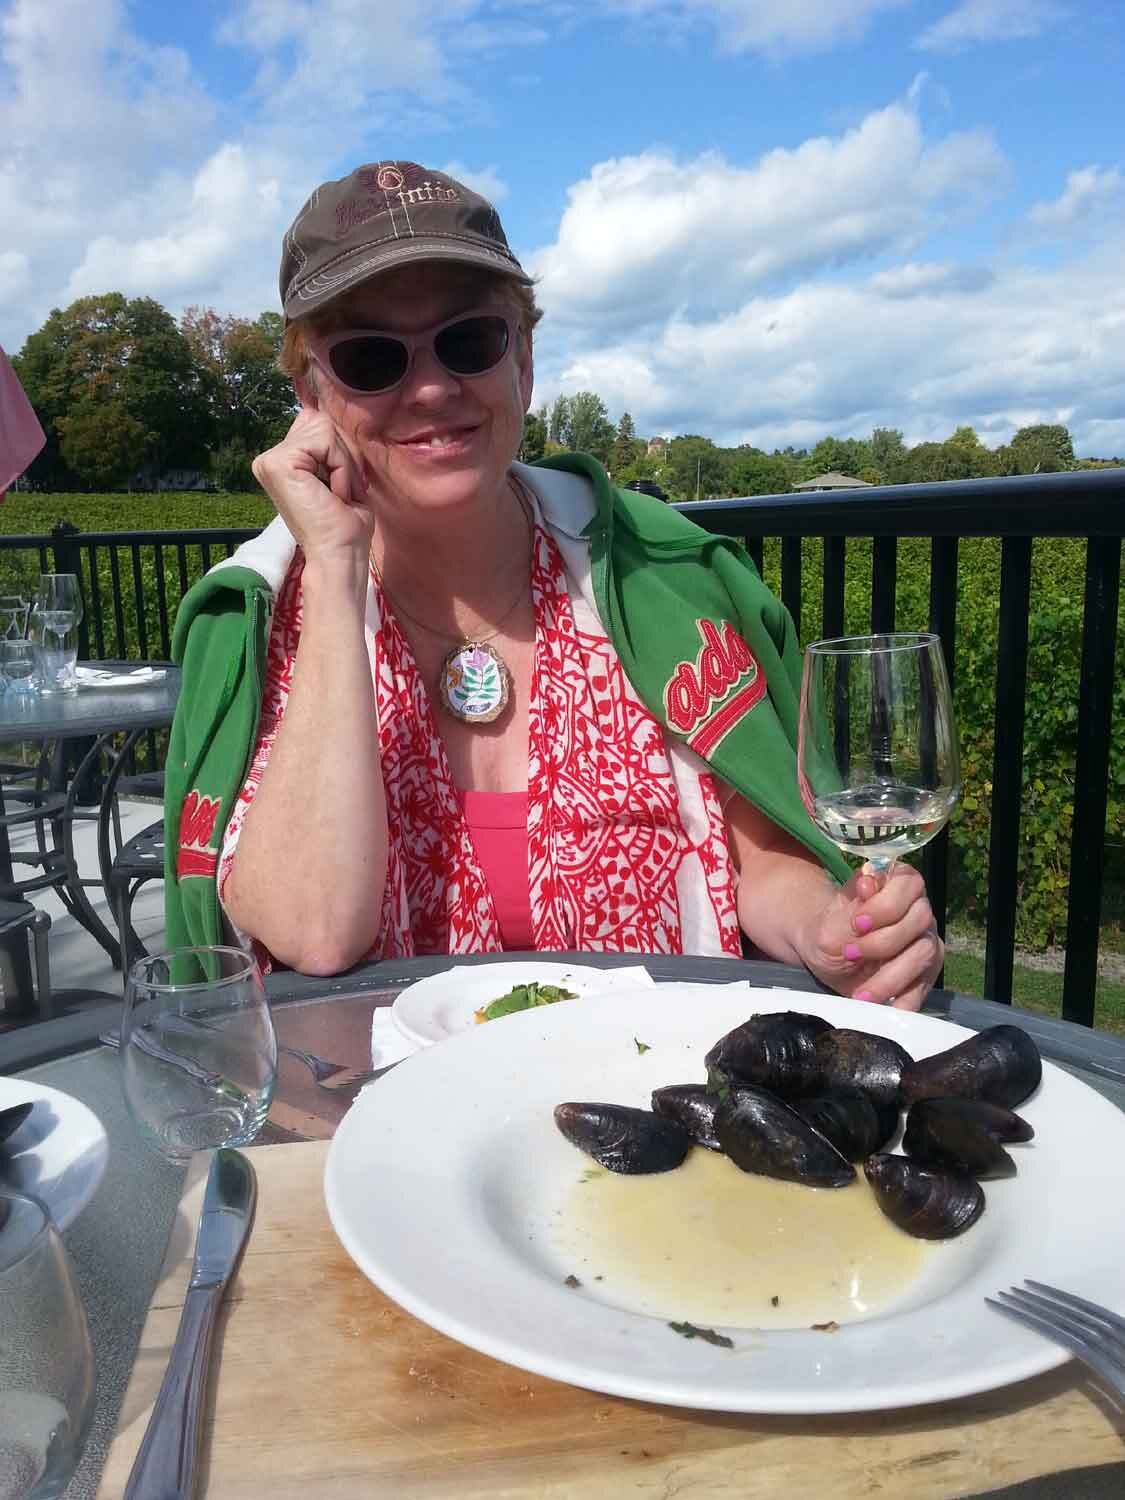 Waupous Winery (the 'County') - Birthday Lunch